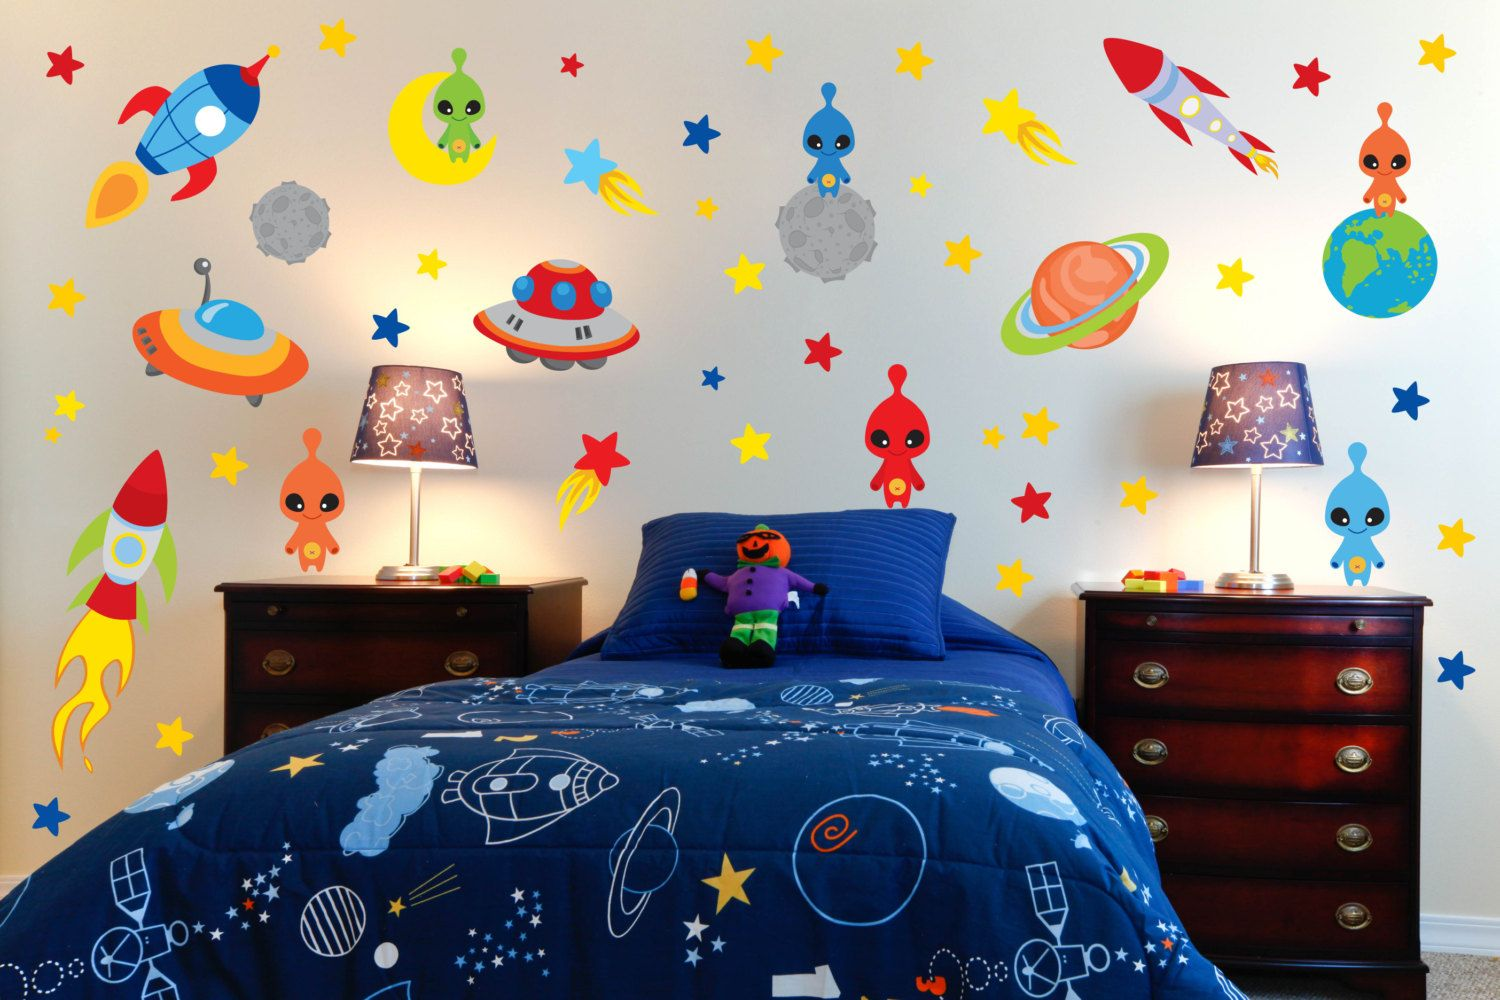 22 Space Themed Room Design Ideas For A New Atmosphere In Your Home In 2020 Themed Kids Room Kids Room Wall Stickers Space Themed Bedroom